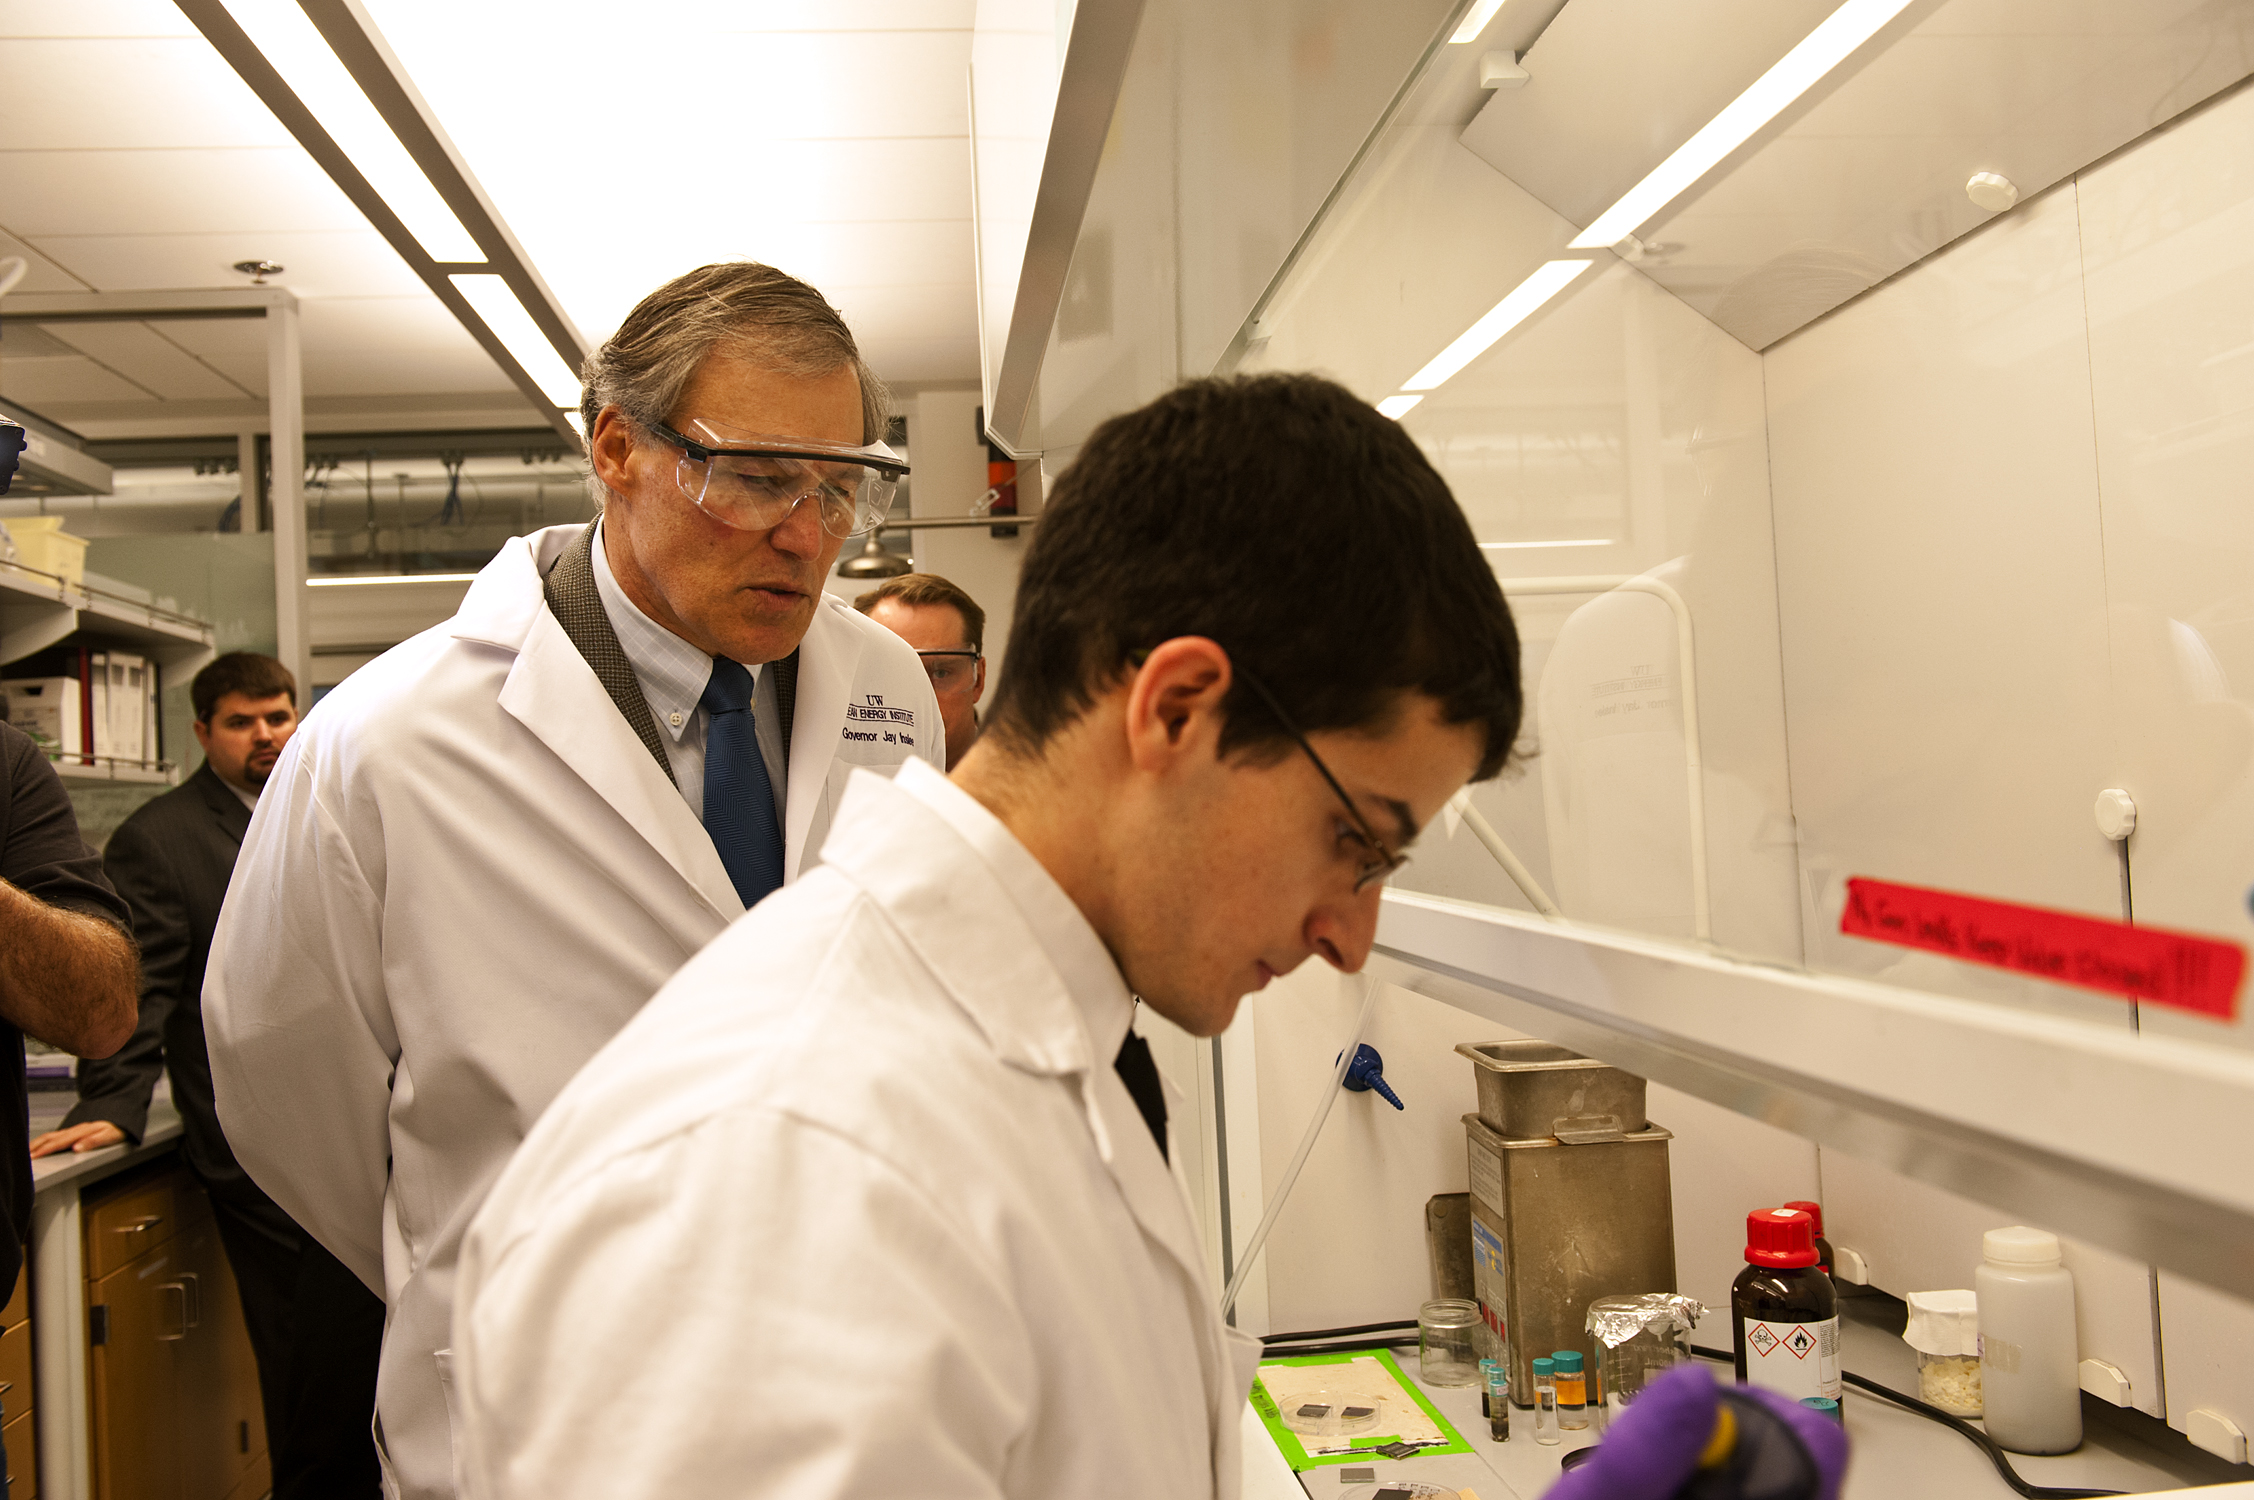 Gov. Jay Inslee watches as Wes Williamson, a UW chemical engineering graduate student, runs a demonstration in a lab.